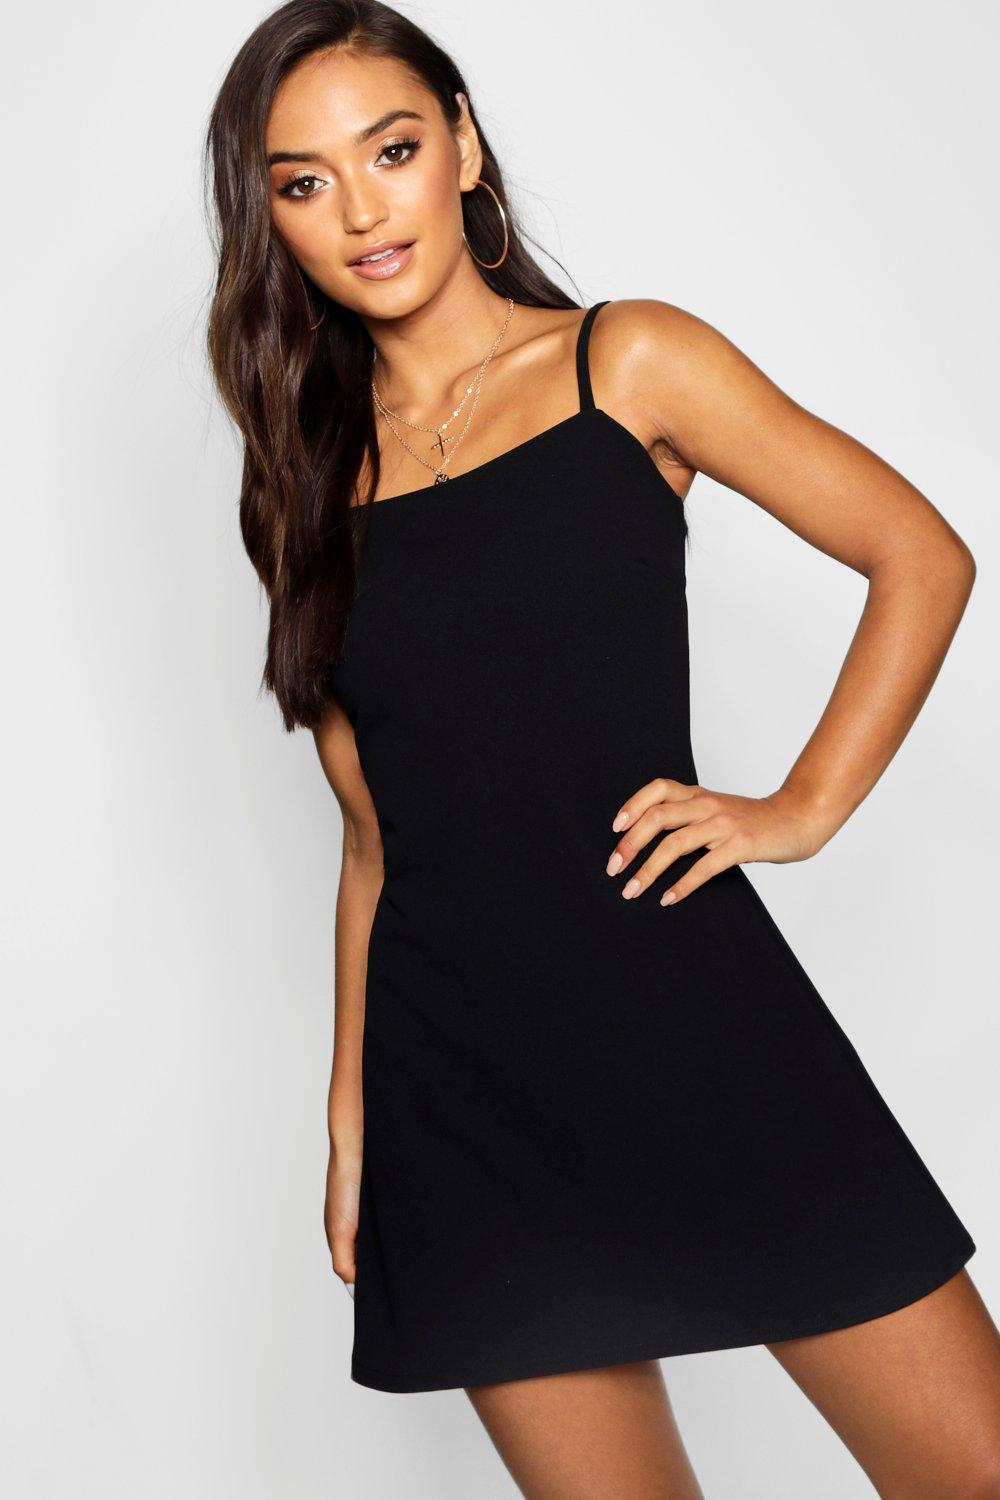 70f4e24c1a81 Boohoo Petite Square Neck Strappy Mini Dress in Black - Lyst